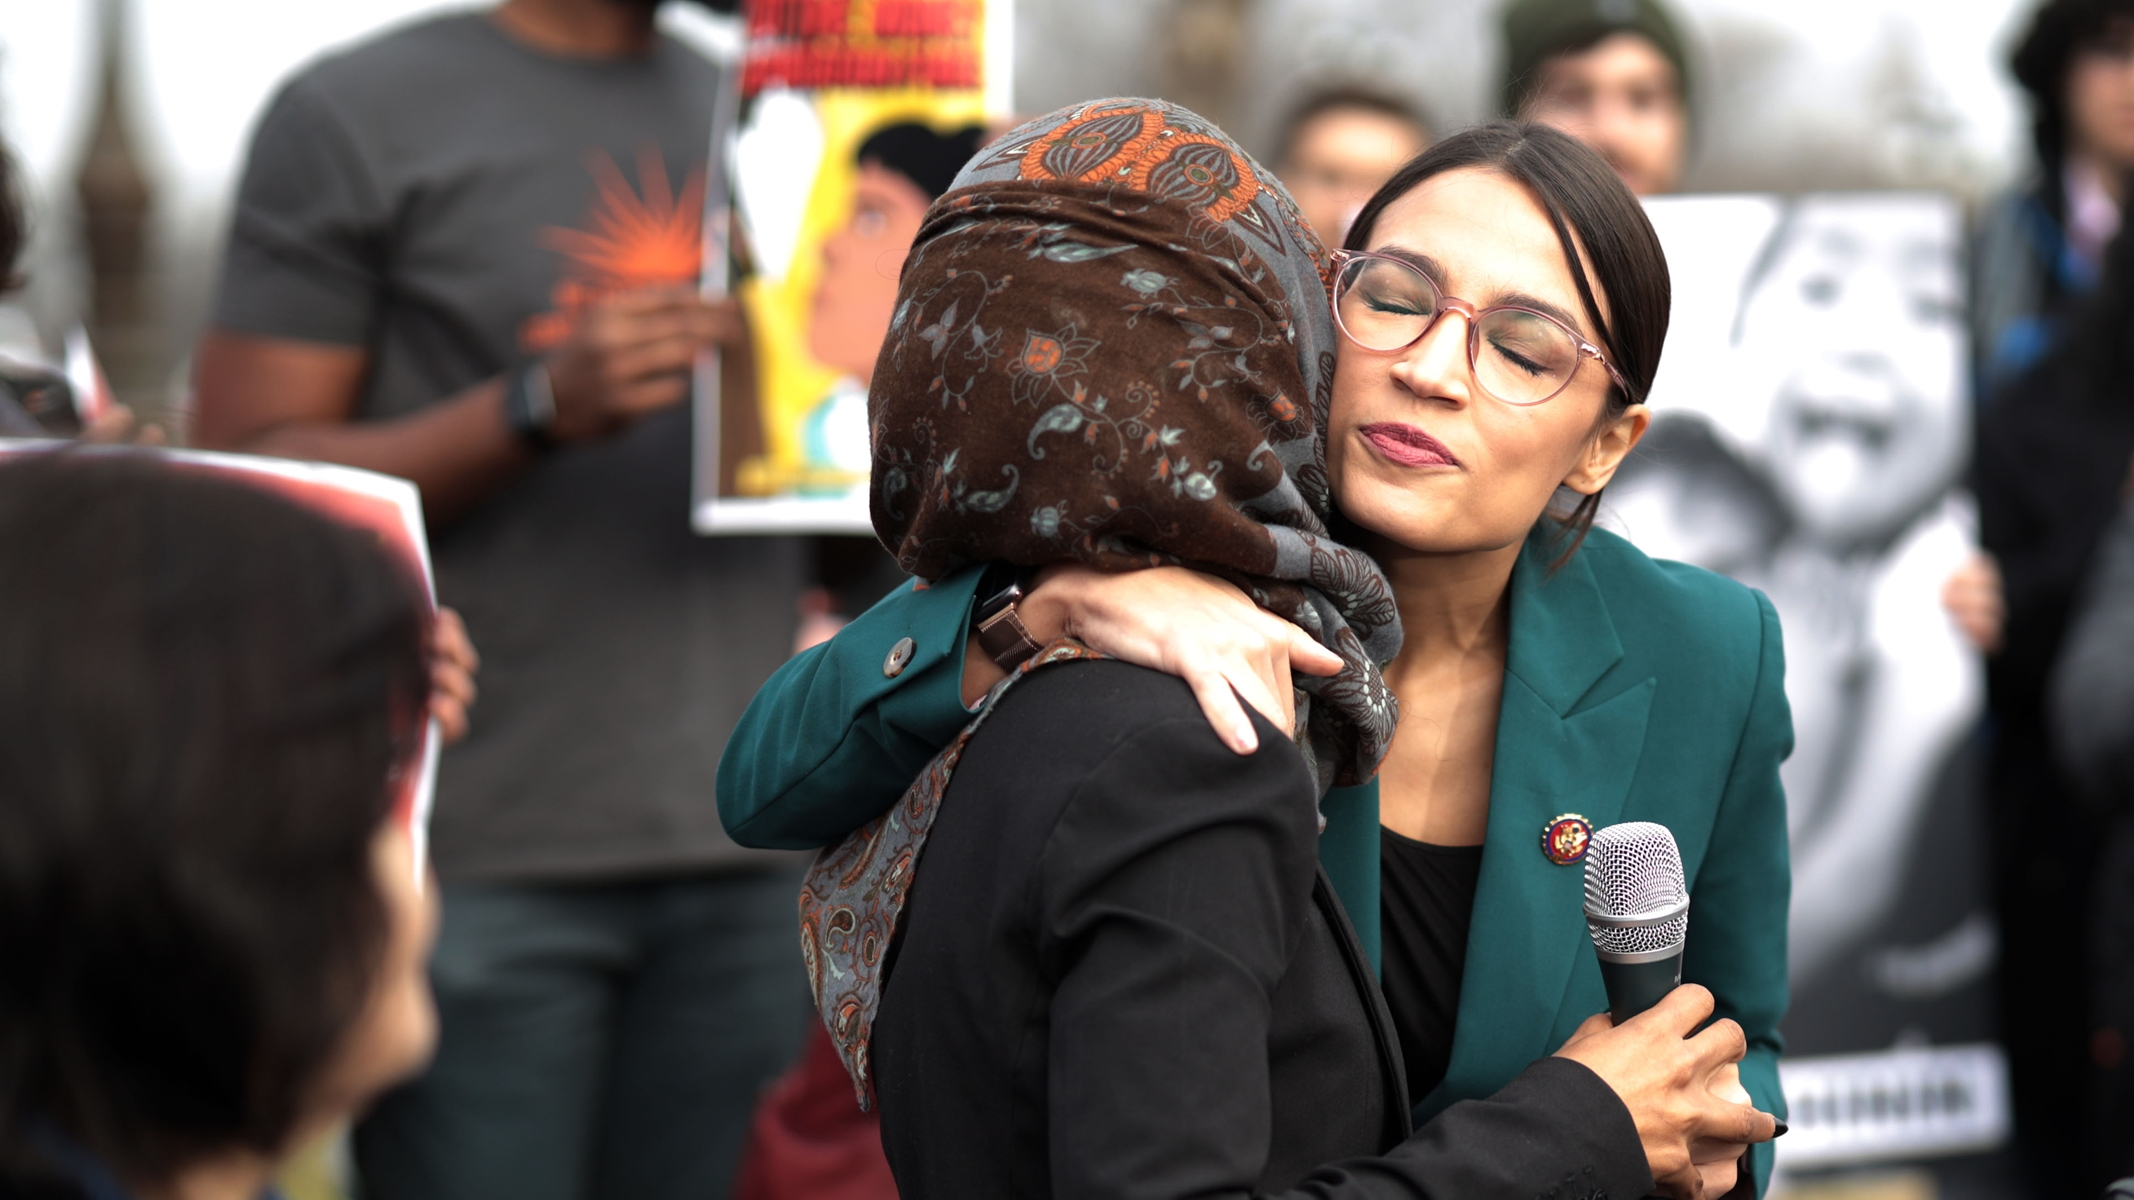 Conservative Media Are Putting Alexandria Ocasio Cortez and Ilhan Omar's Lives In Danger